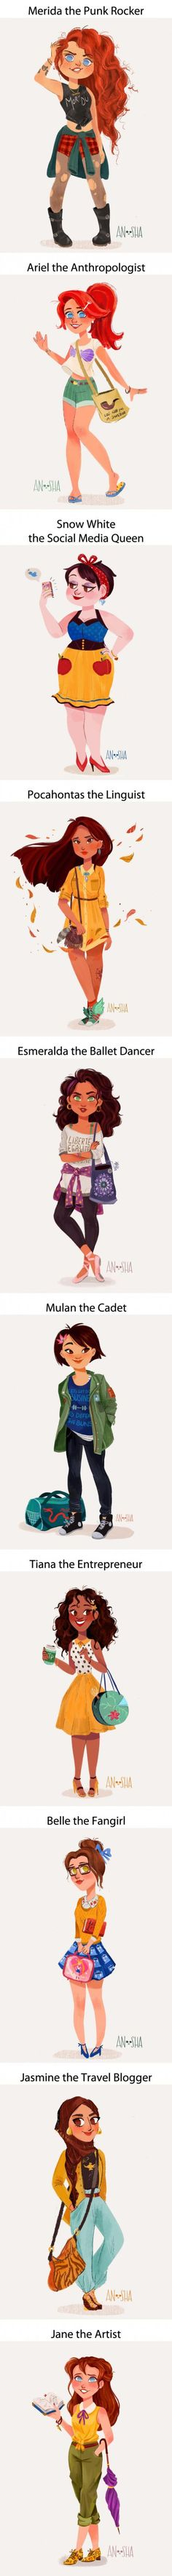 If Disney Princess Lived In The Century As Modern Day Girls (by Anoosha Syed). So beautiful I wnat to see more of them disney art Disney Pixar, Disney Fan Art, Disney And Dreamworks, Disney Magic, Disney Movies, Disney Stuff, Disney Princess Cartoons, Disney Artwork, Disney Crossovers